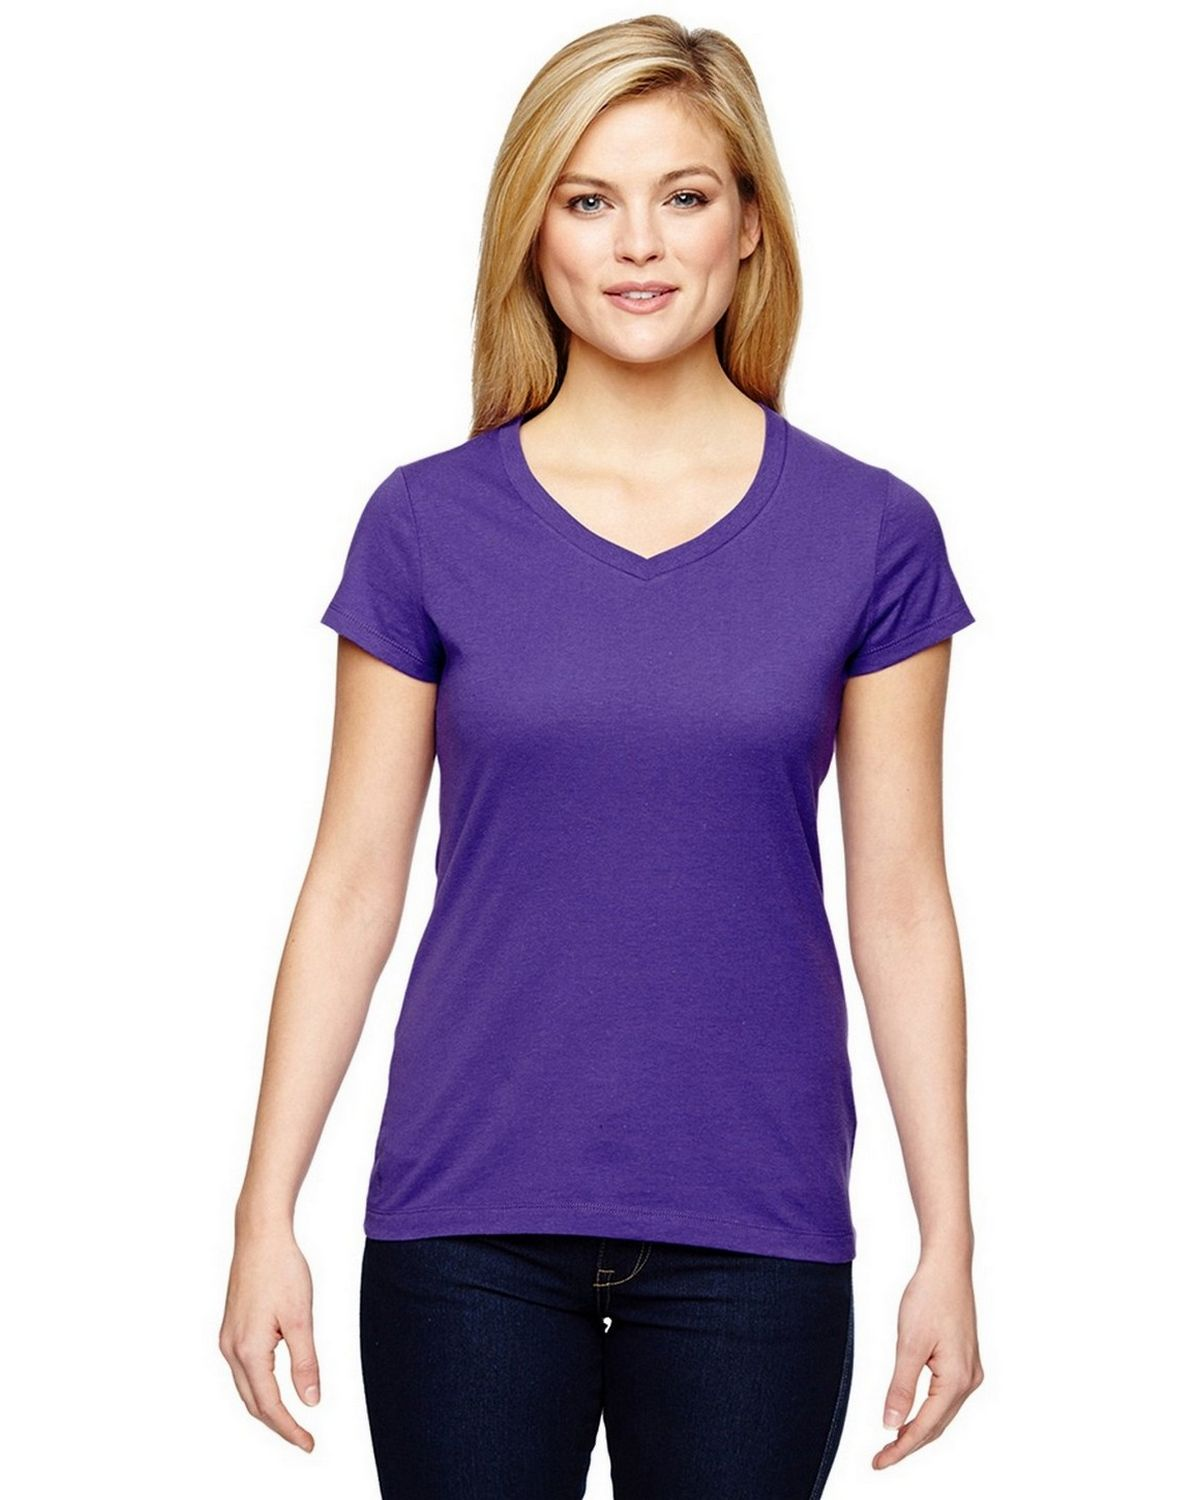 Champion T050 Vapor Ladies T-Shirt - Sport Purple - XL T050